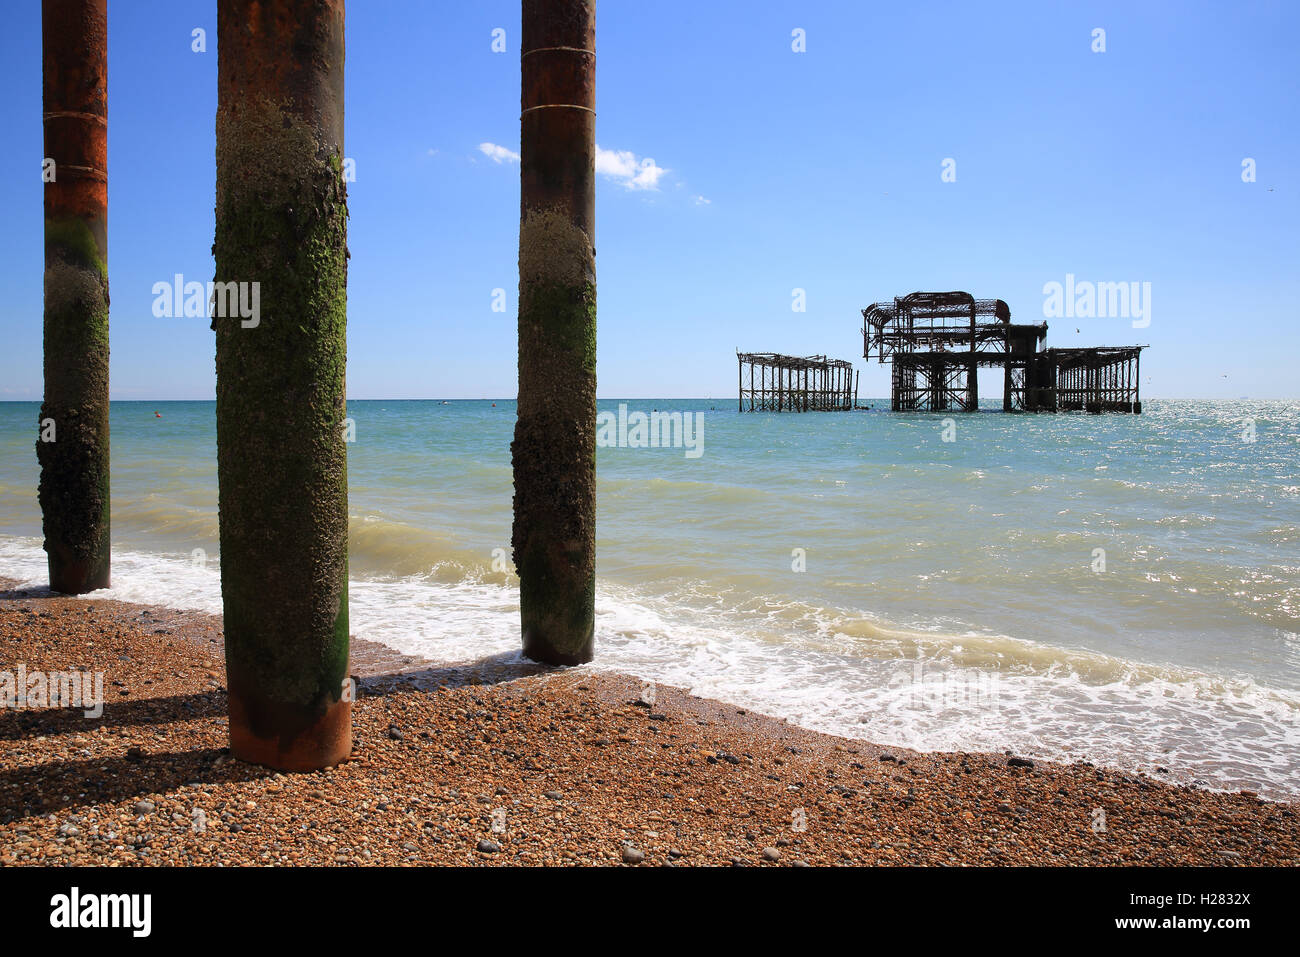 The skeletal remains of the Pavilion and supports of Brighton West Pier, in East Sussex, England, UK - Stock Image